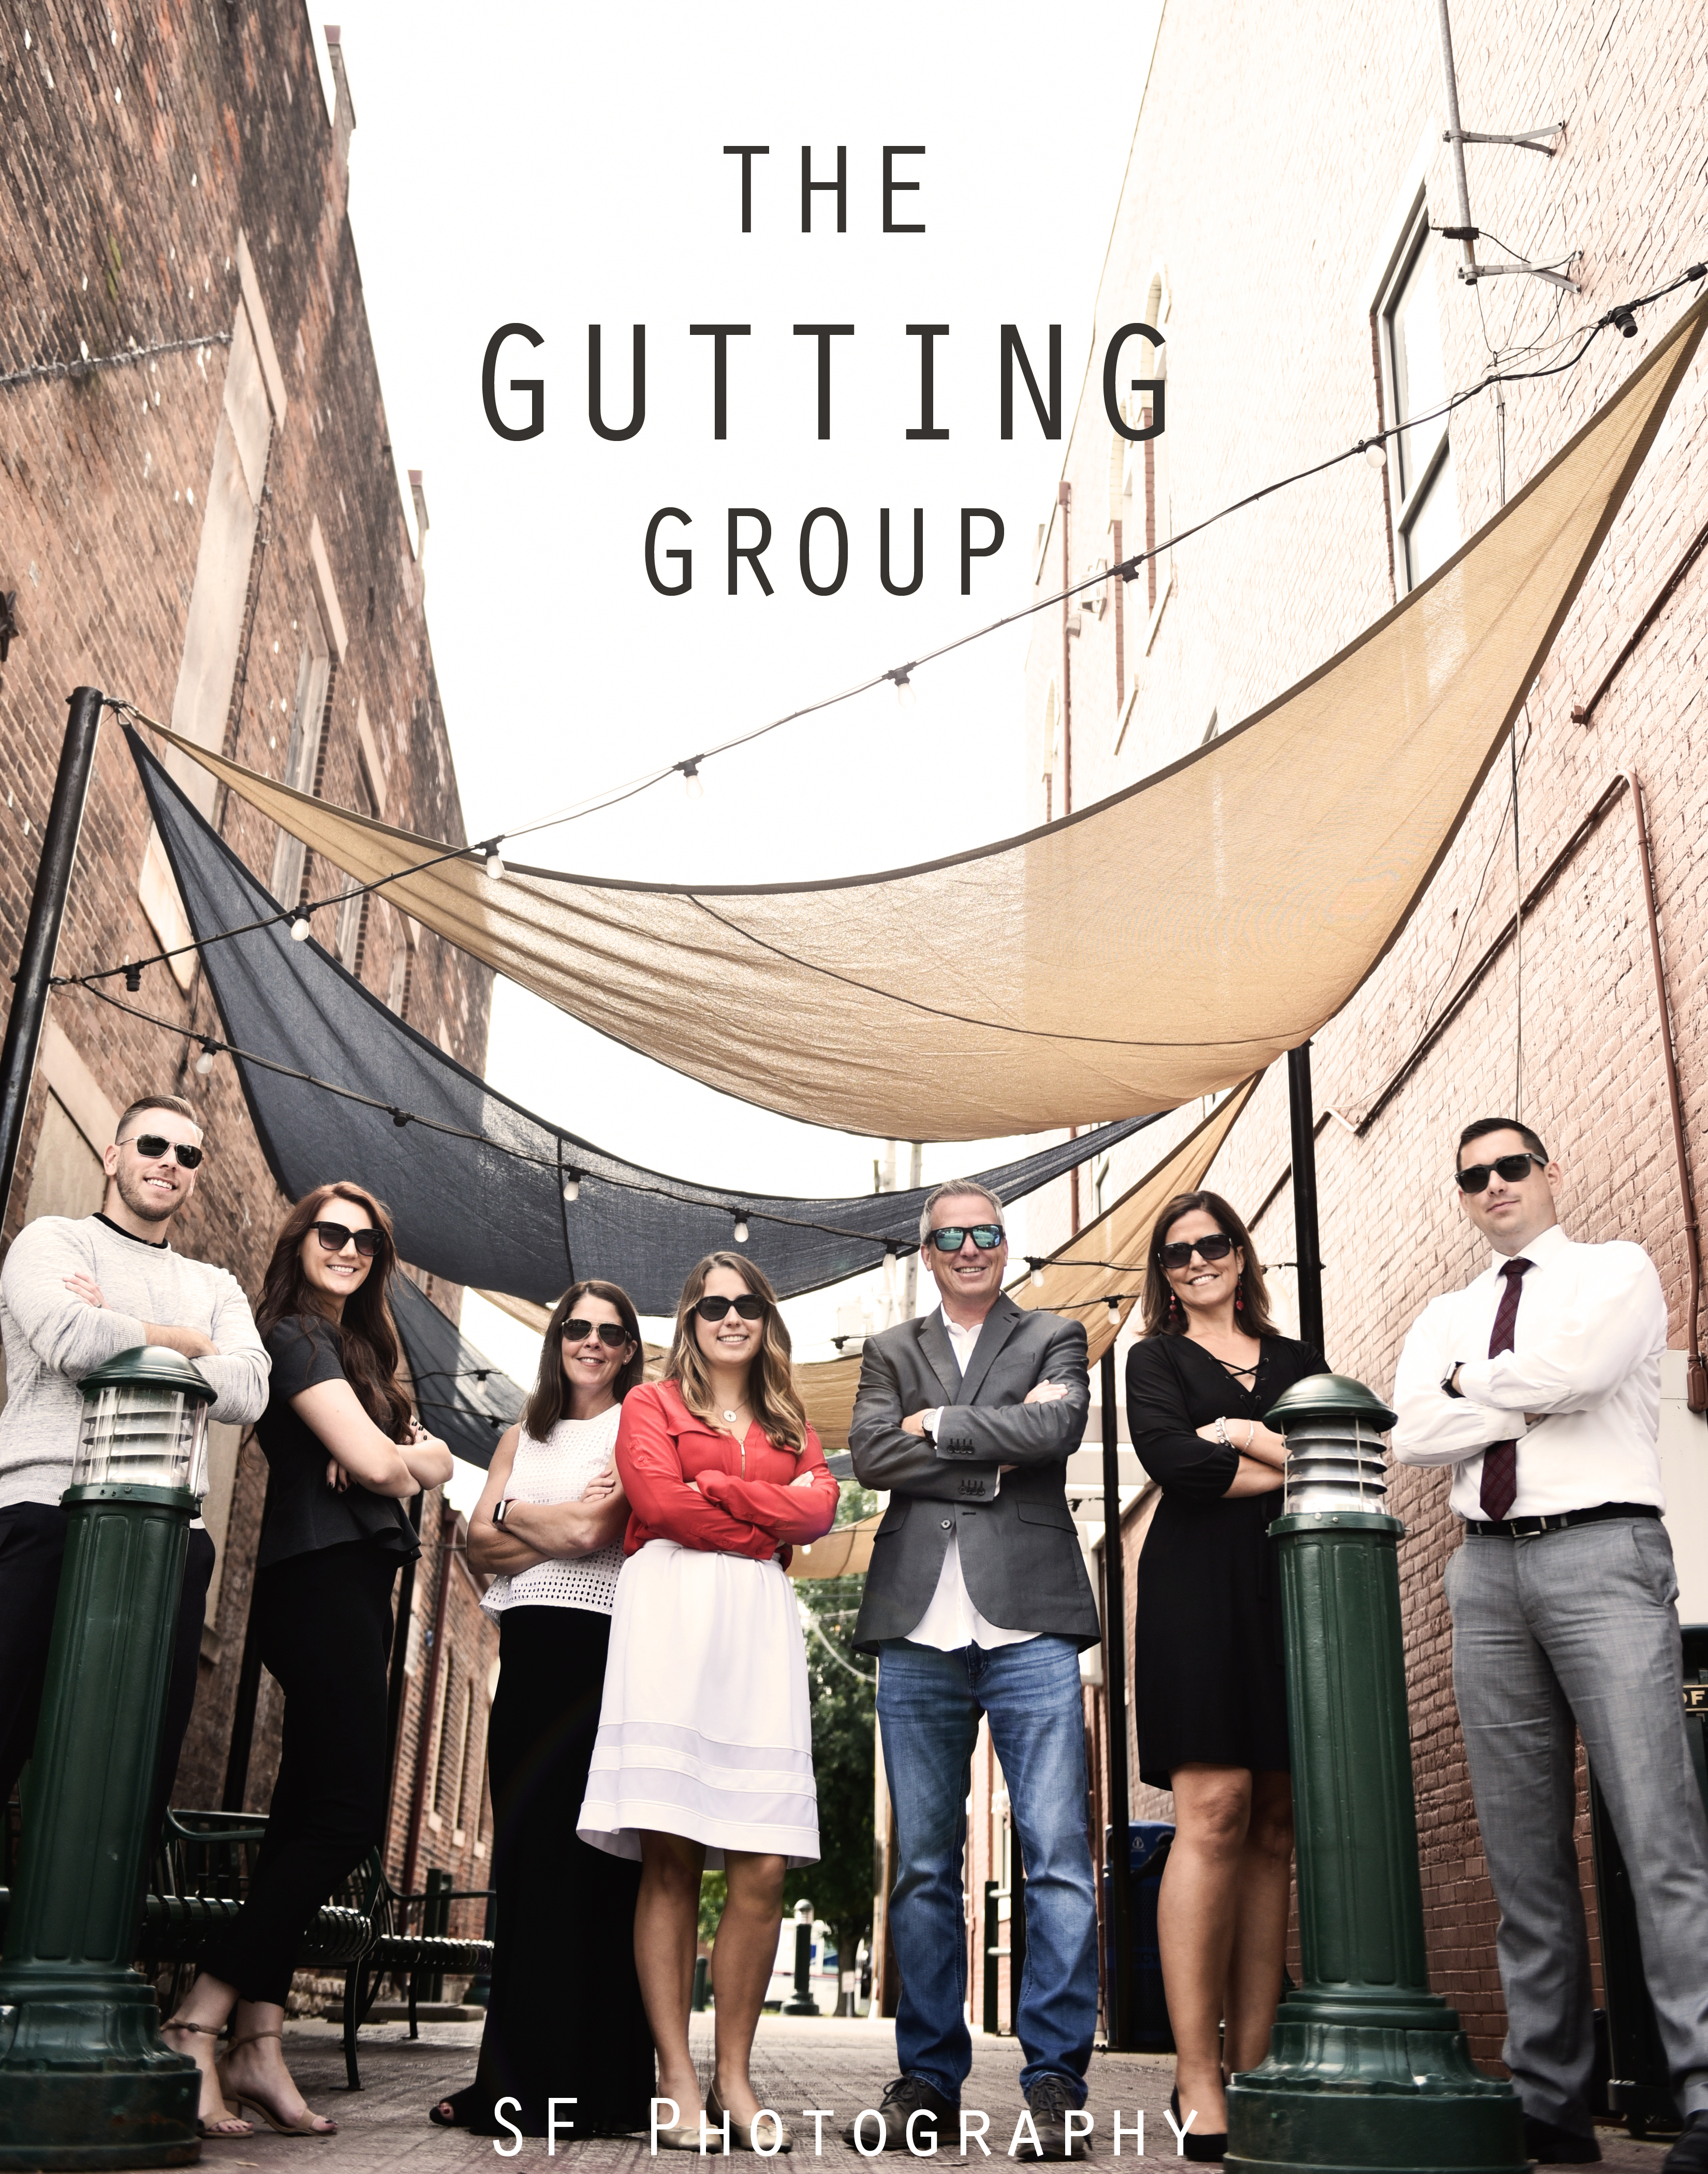 Happy Holidays from The Gutting Group